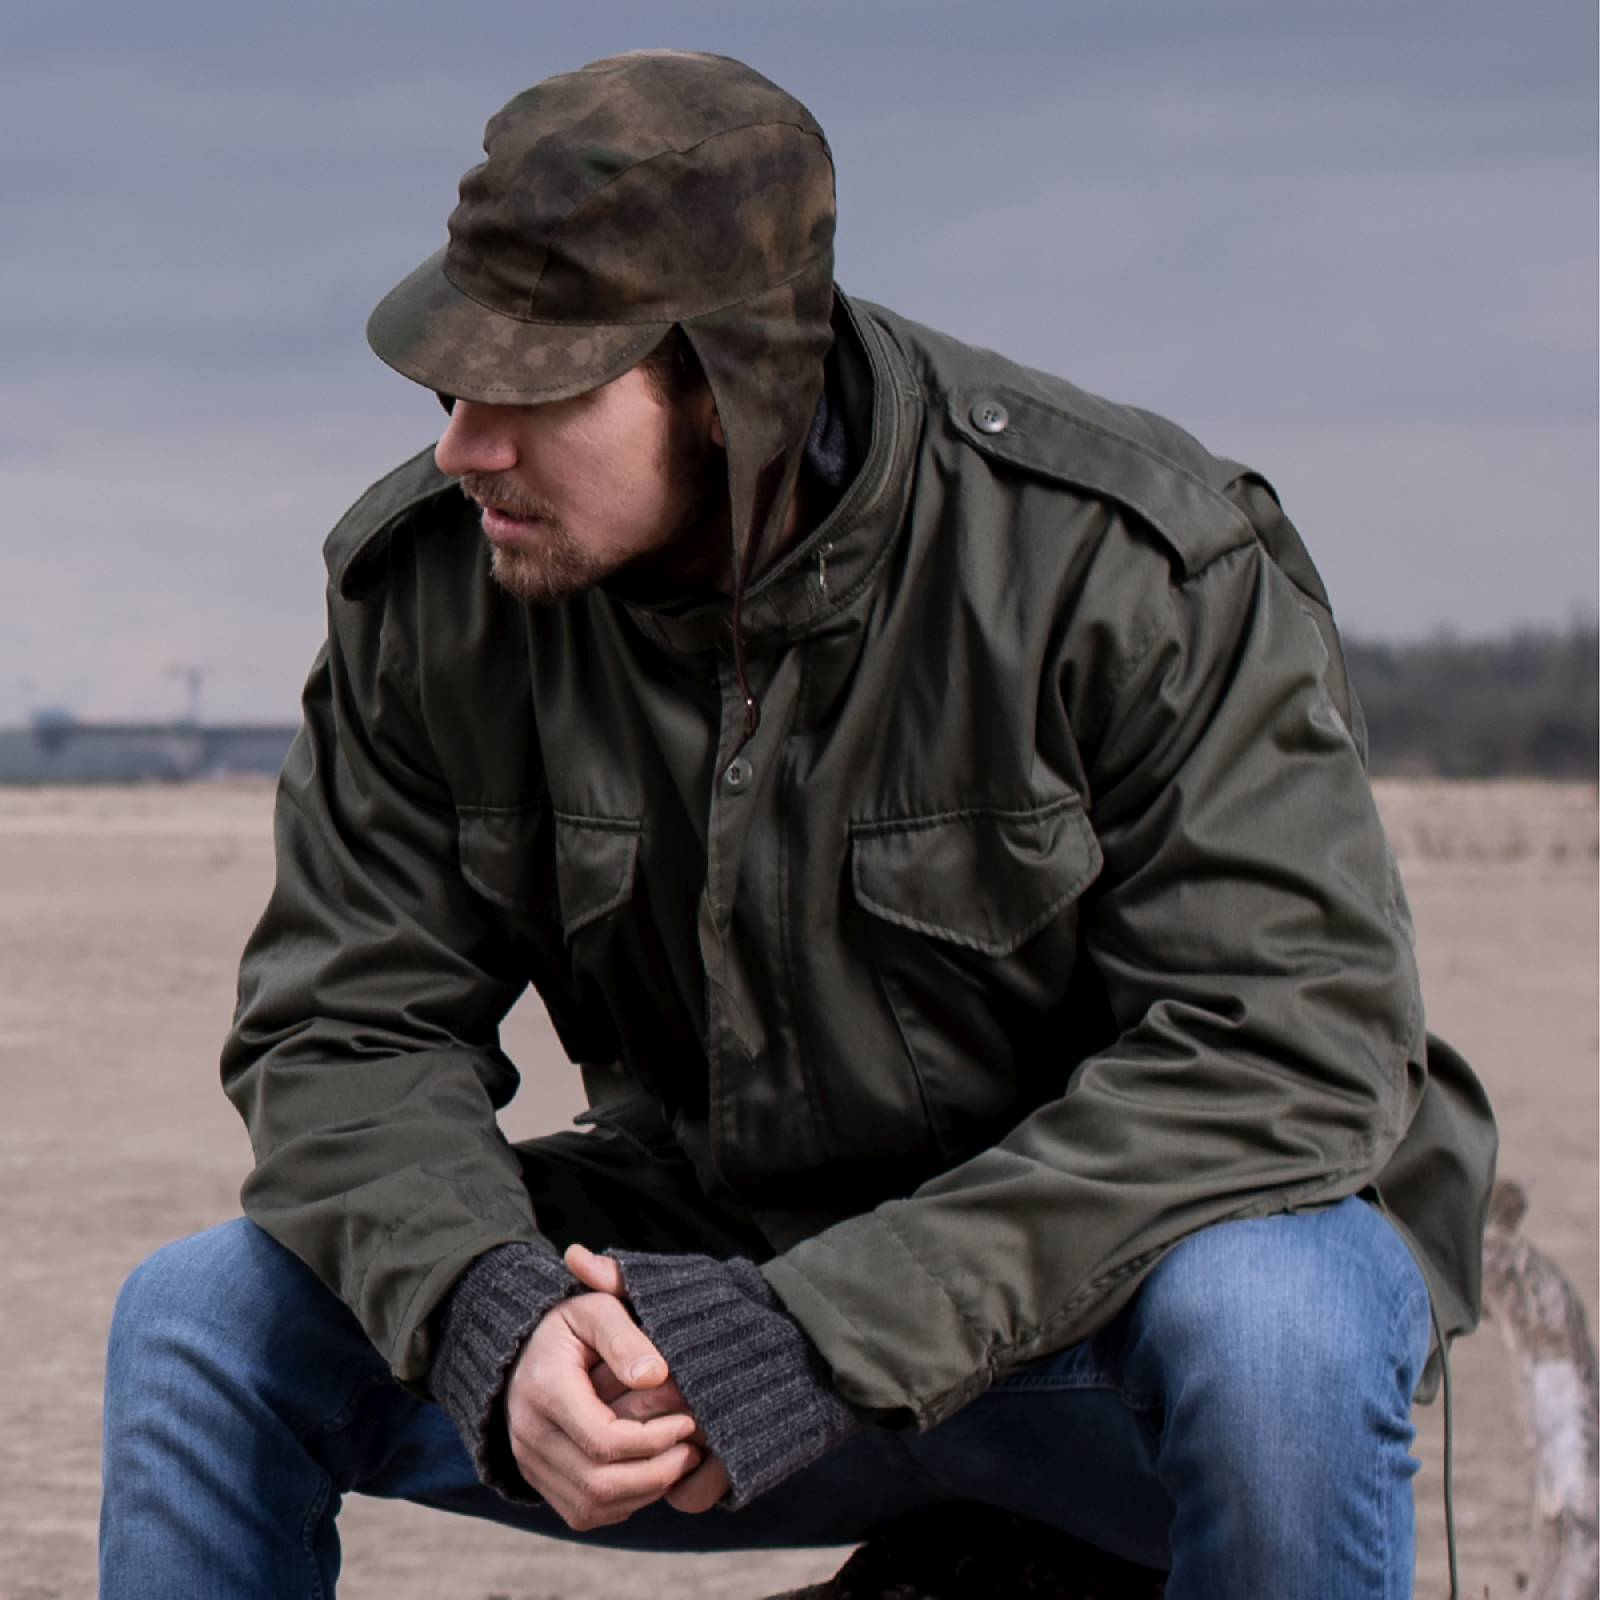 Expedition Comfy Camo Bomber Hat Made Of Water Resistant